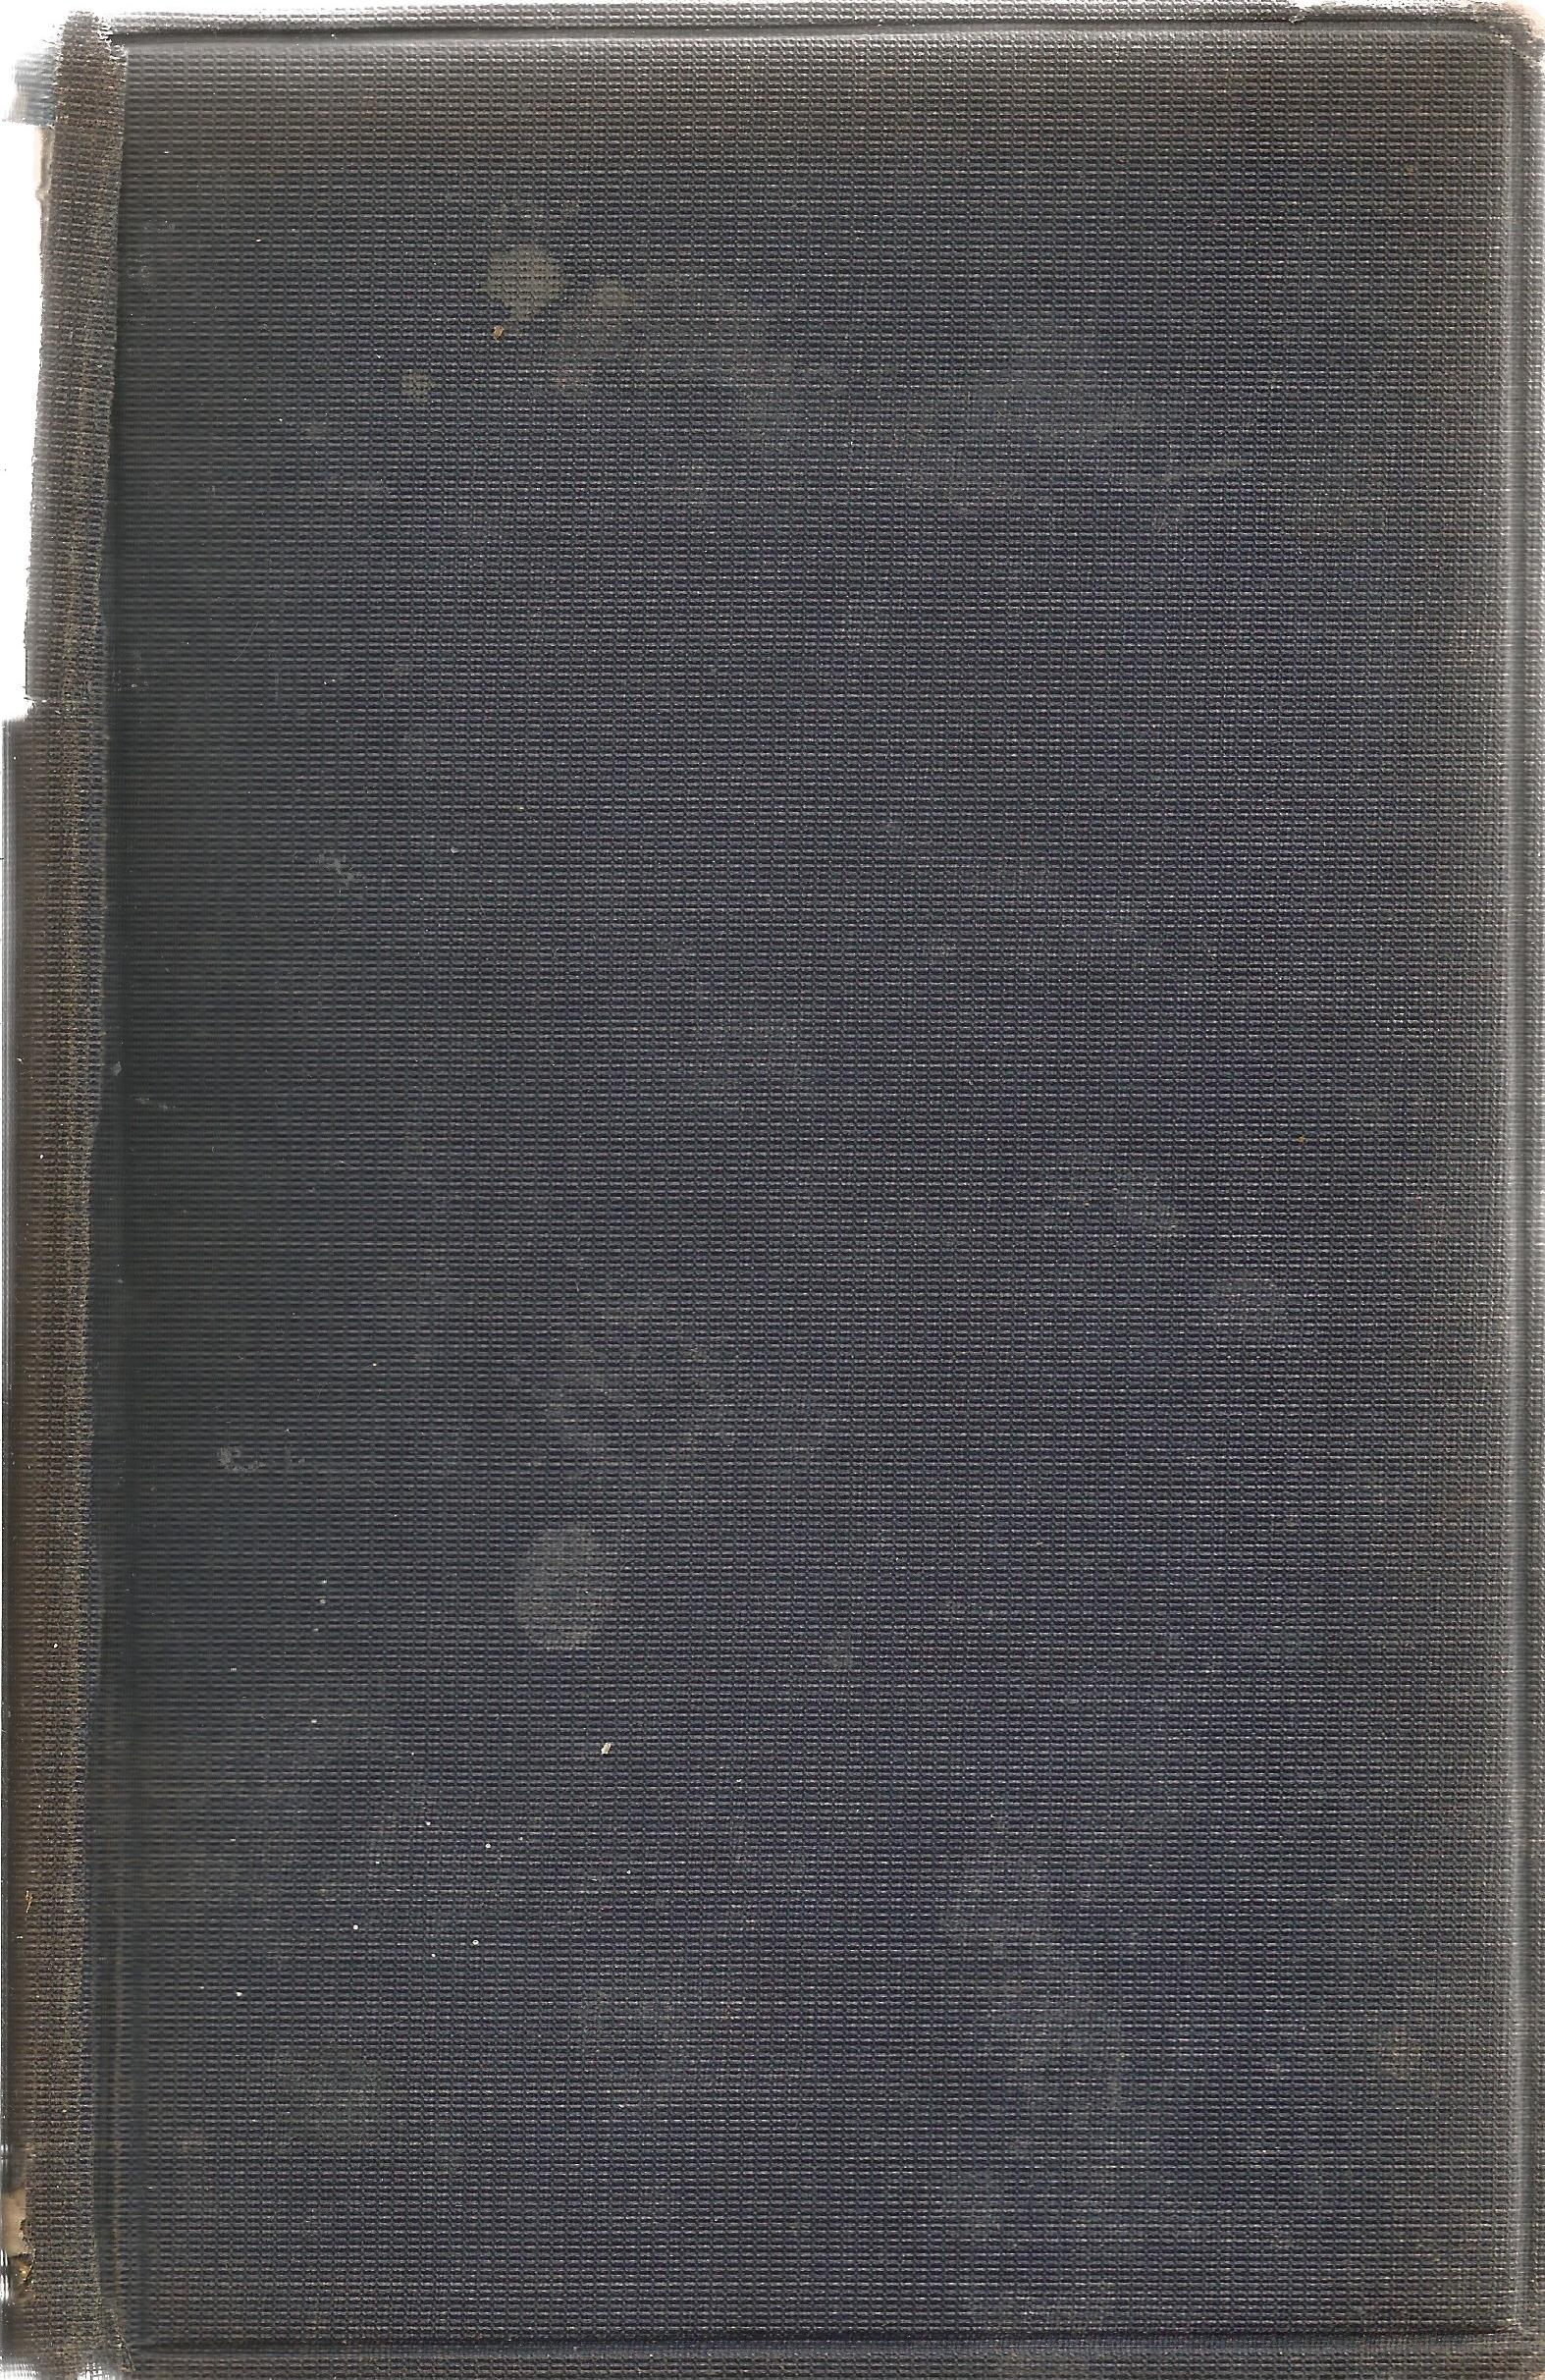 Signed Hardback Book The Gunroom by Charles Langbridge Morgan 1919 First Edition published by A C